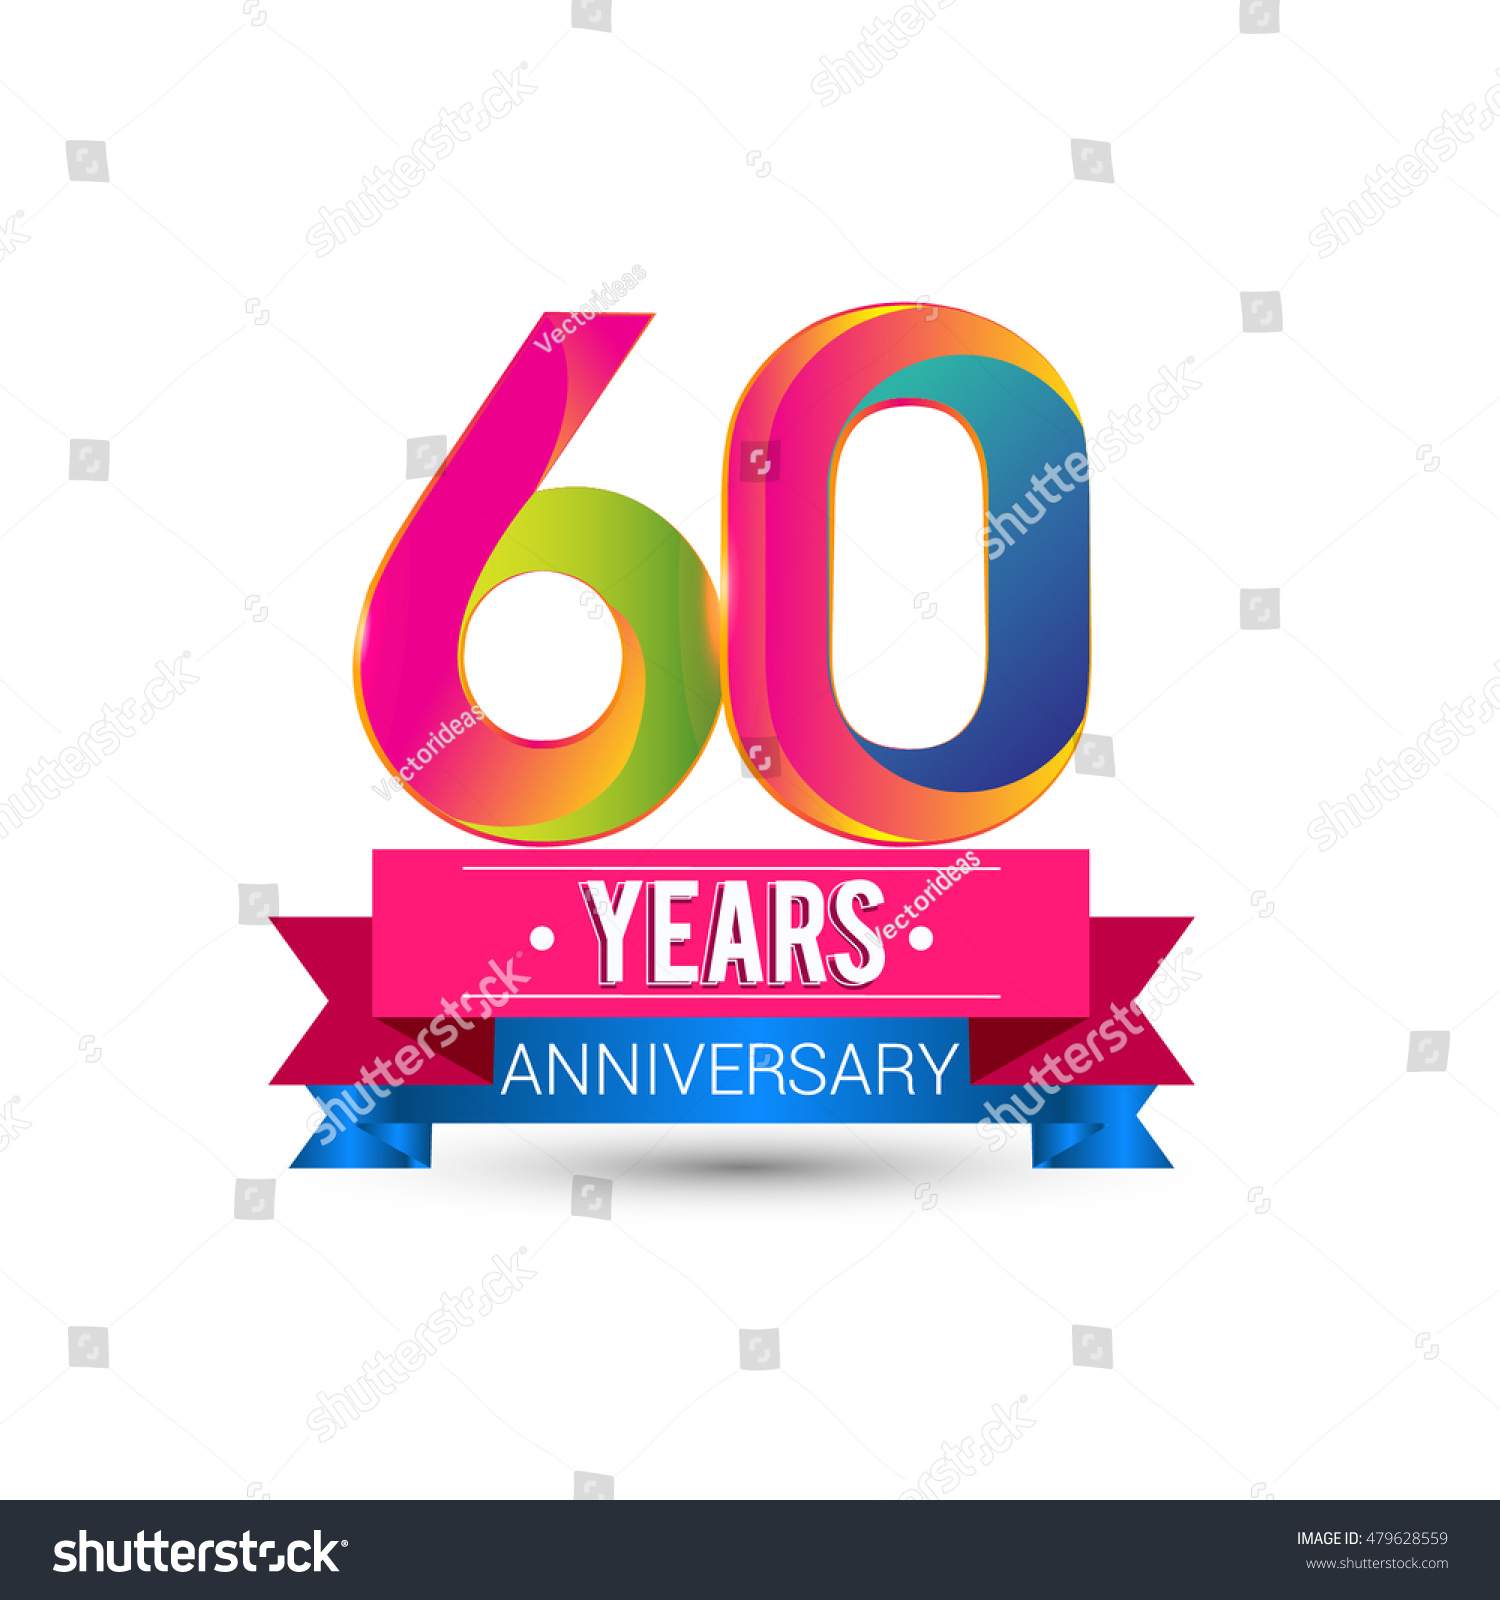 60 Years Anniversary Celebration Logo Red Stock Vector ...Red And Blue Ribbon Logo